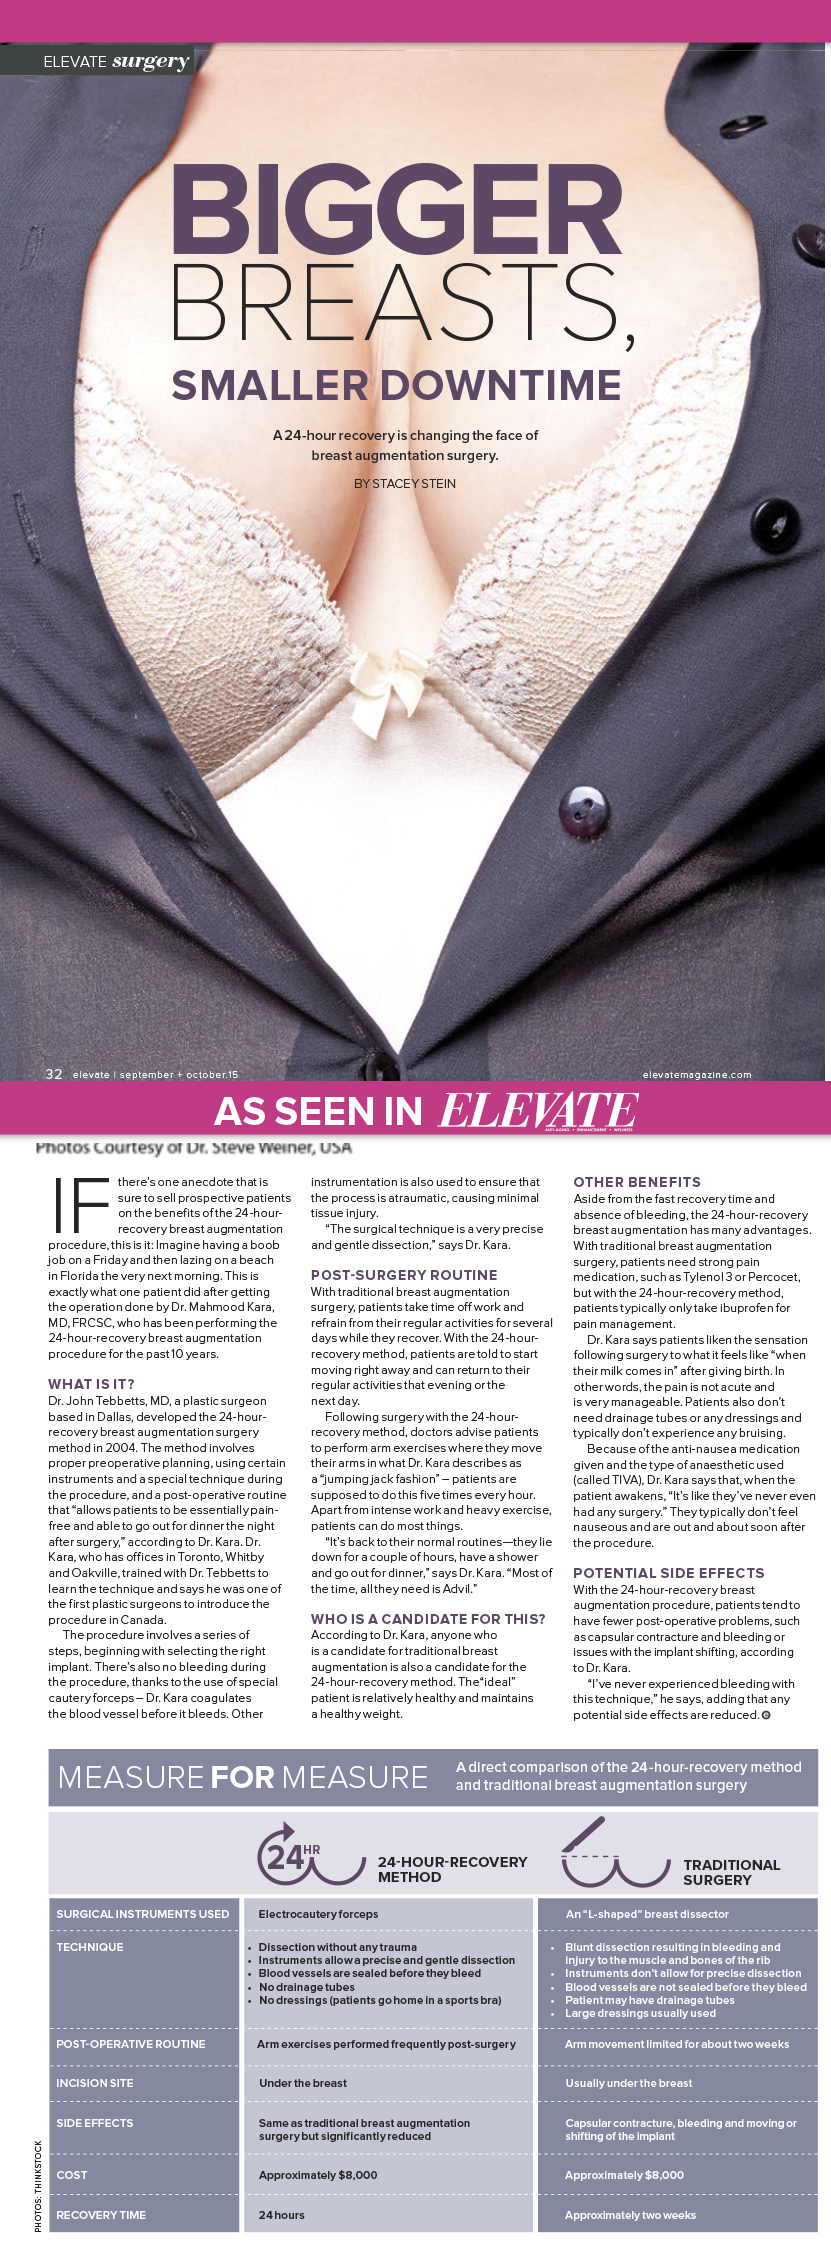 24 Hour breast augmentation article in Elevate magazine.